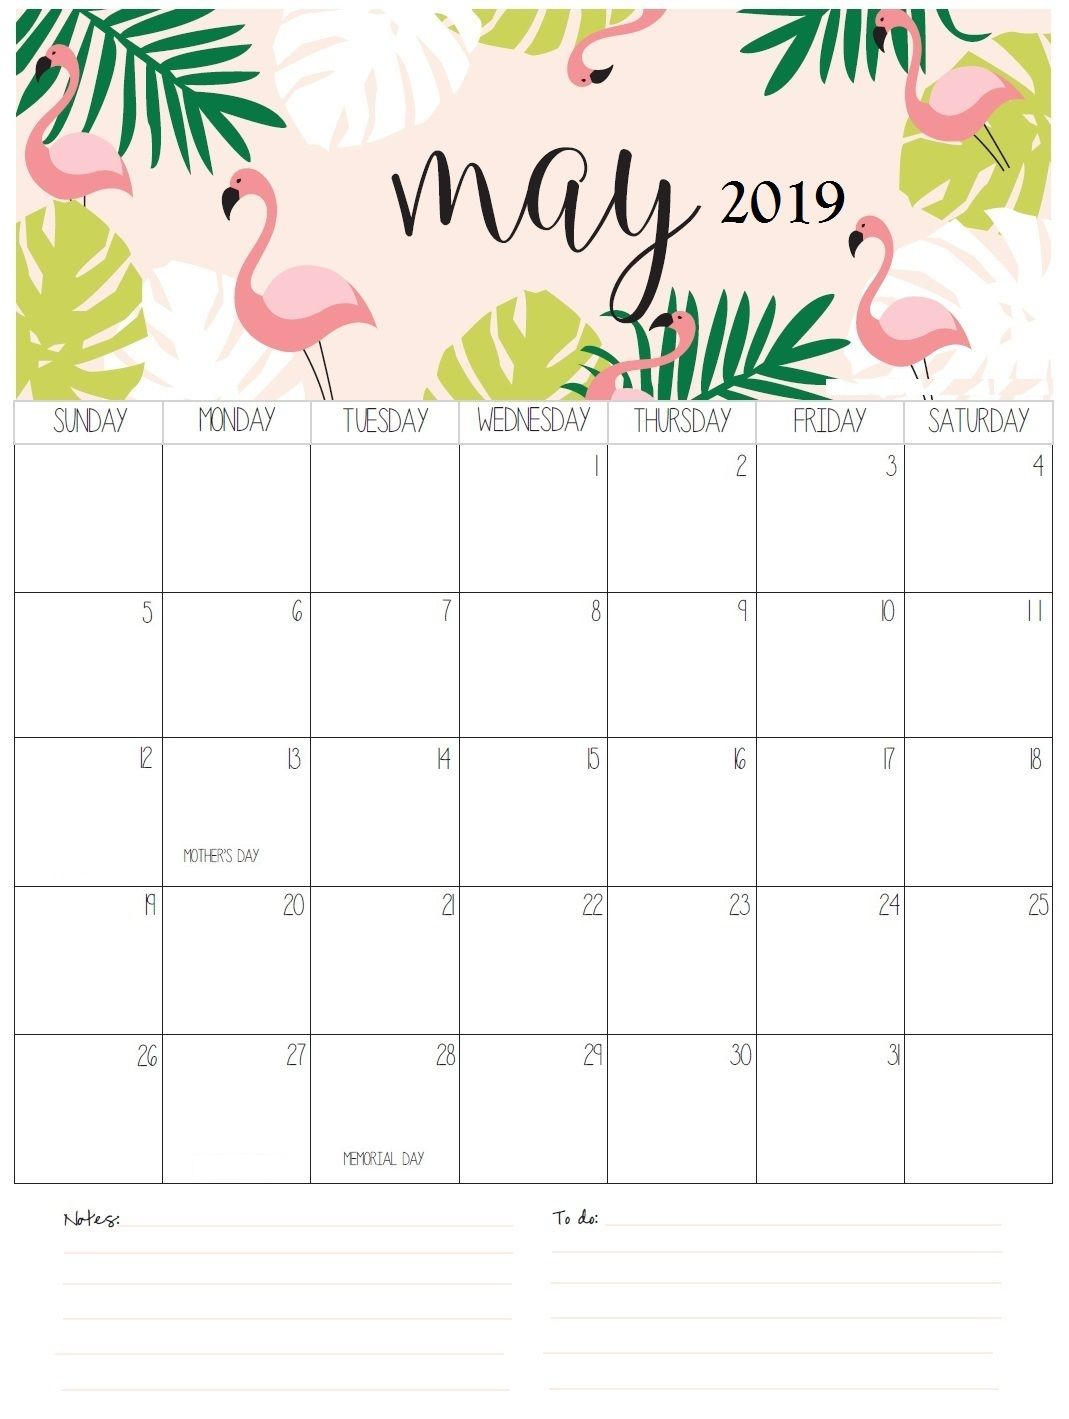 Personalized May 2019 Calendar Cute